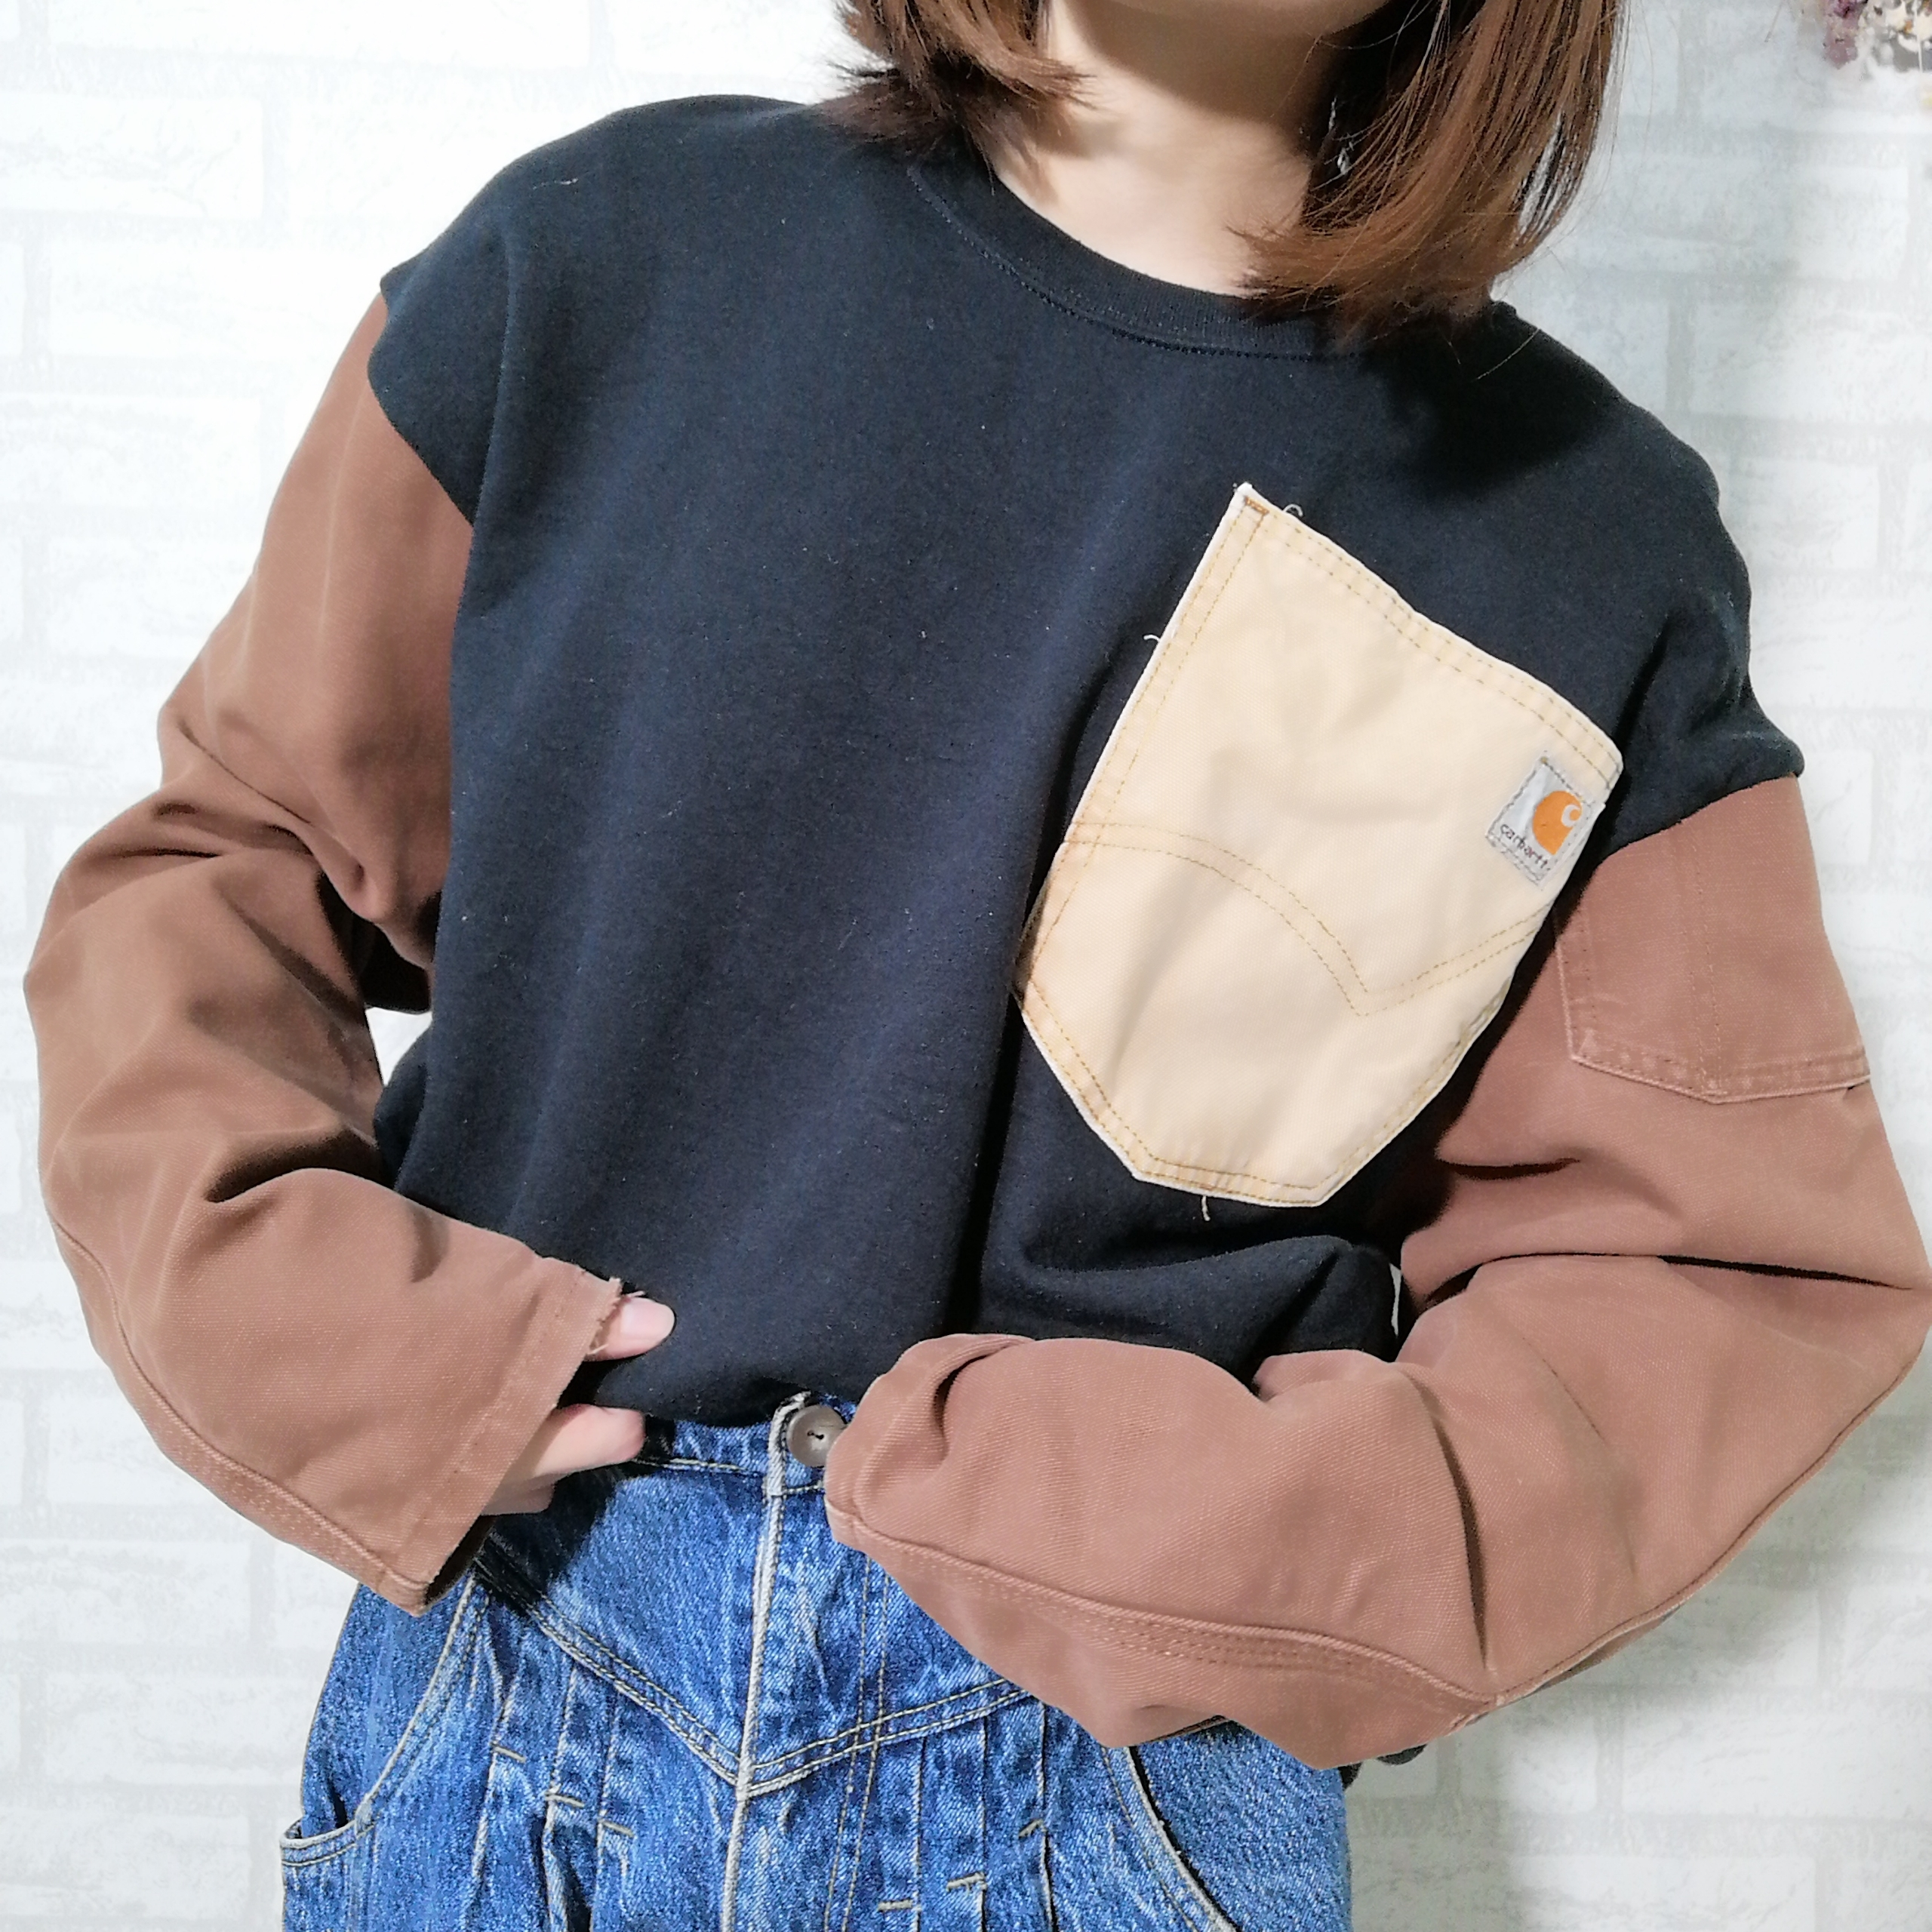 ○ Carhartt remake sweat shirts ○